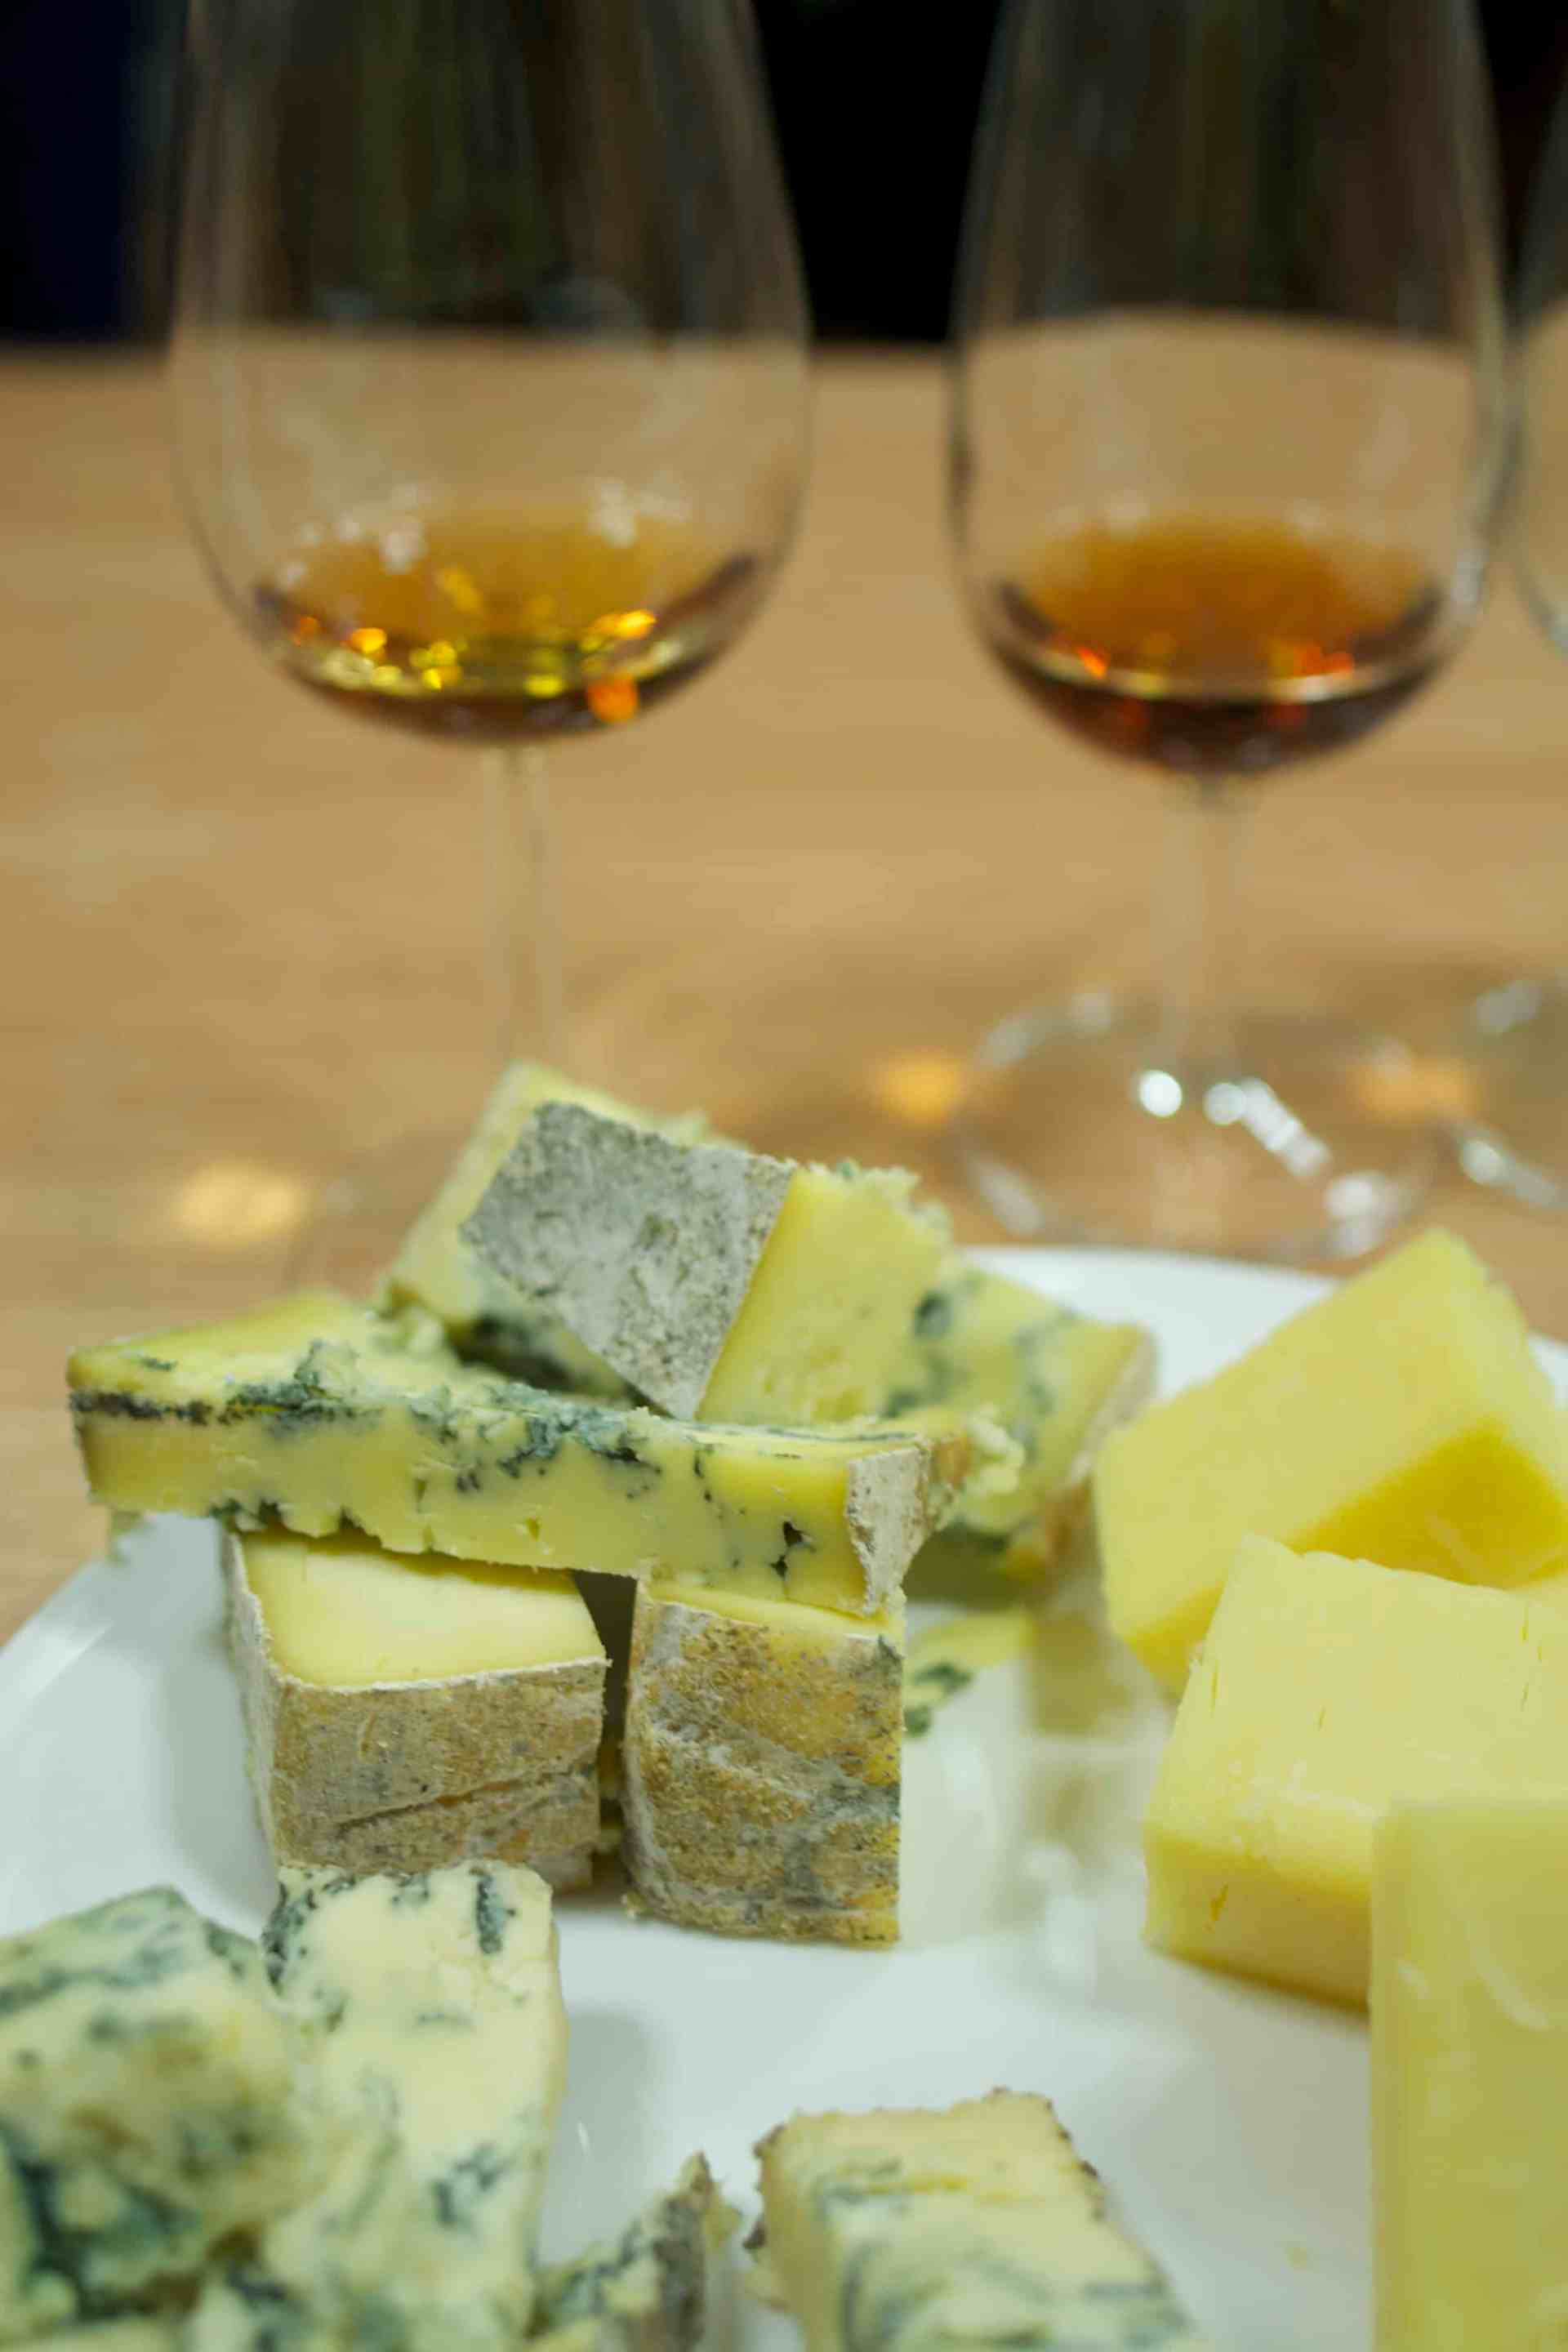 Cheese and wine, with Alex James' Blue Monday (top left)